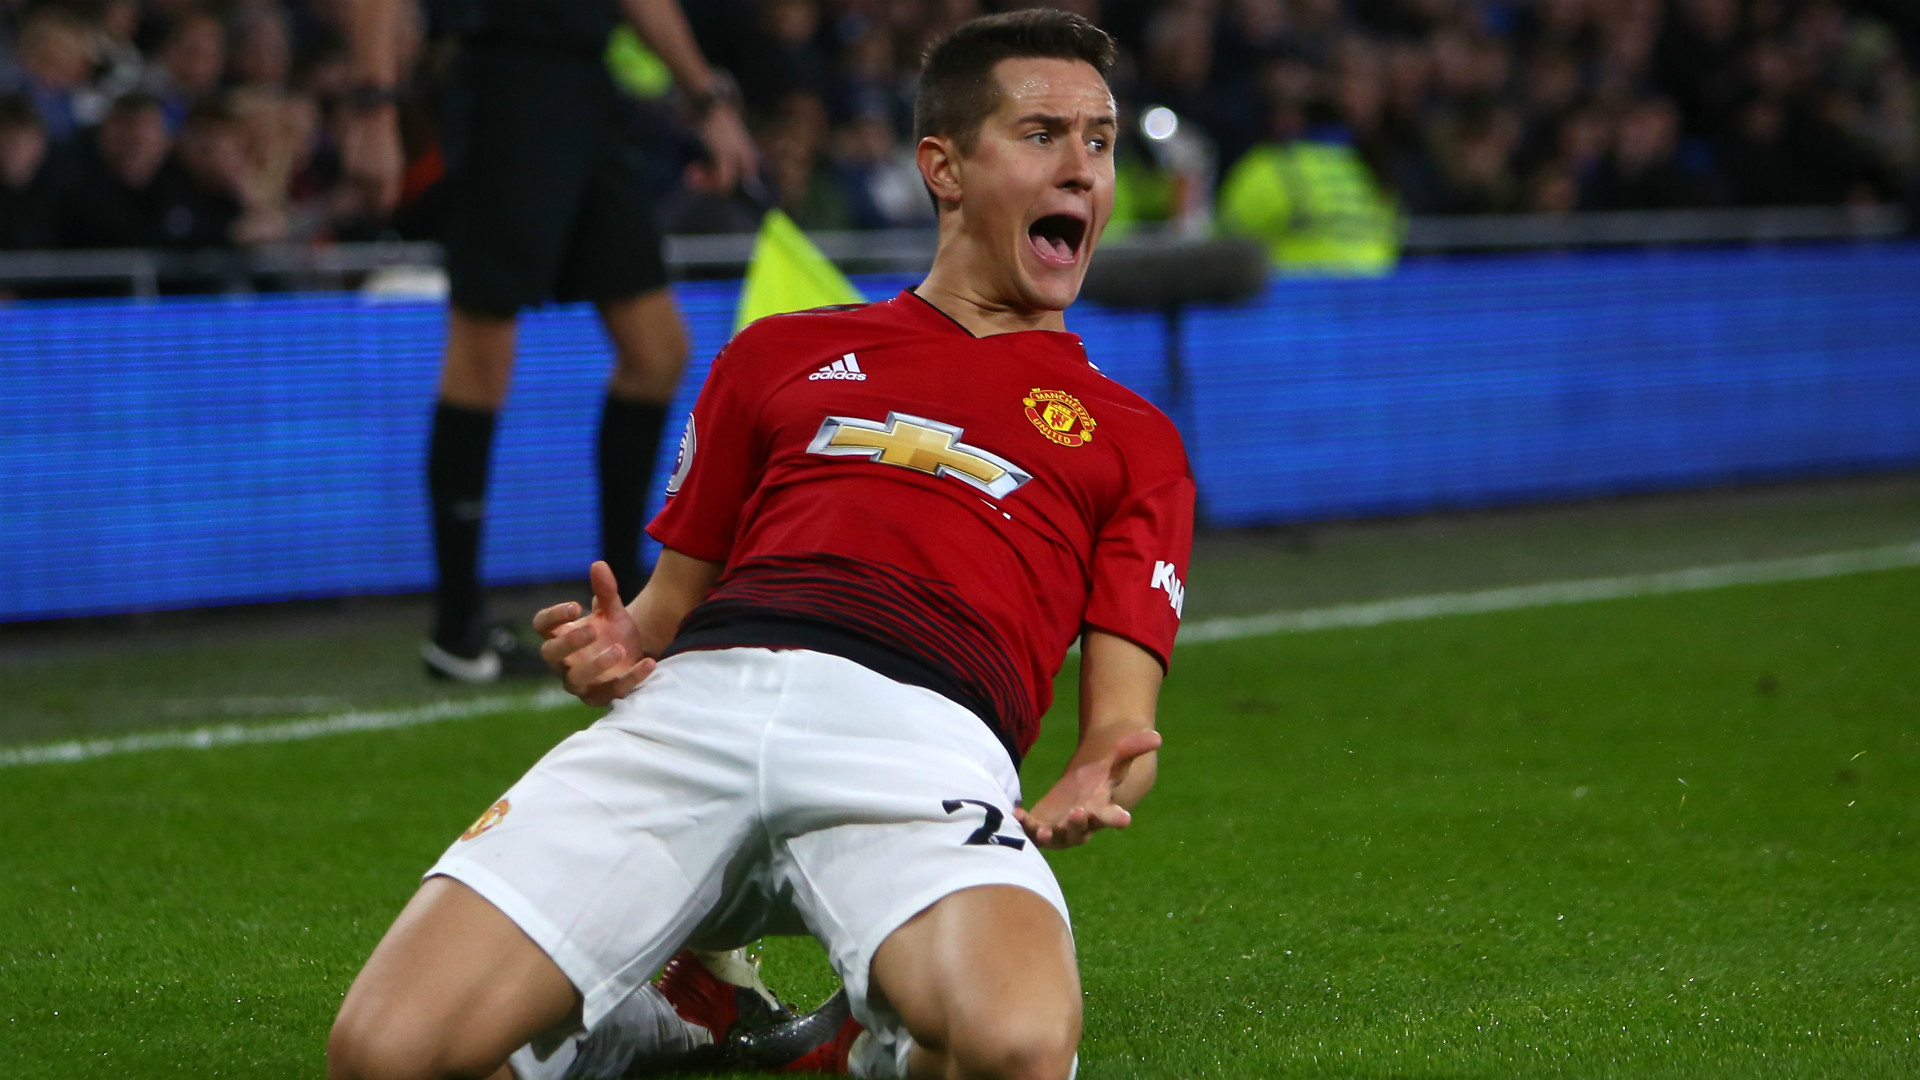 ANDER HERRERA MANCHESTER UNITED PREMIER LEAGUE 22122018